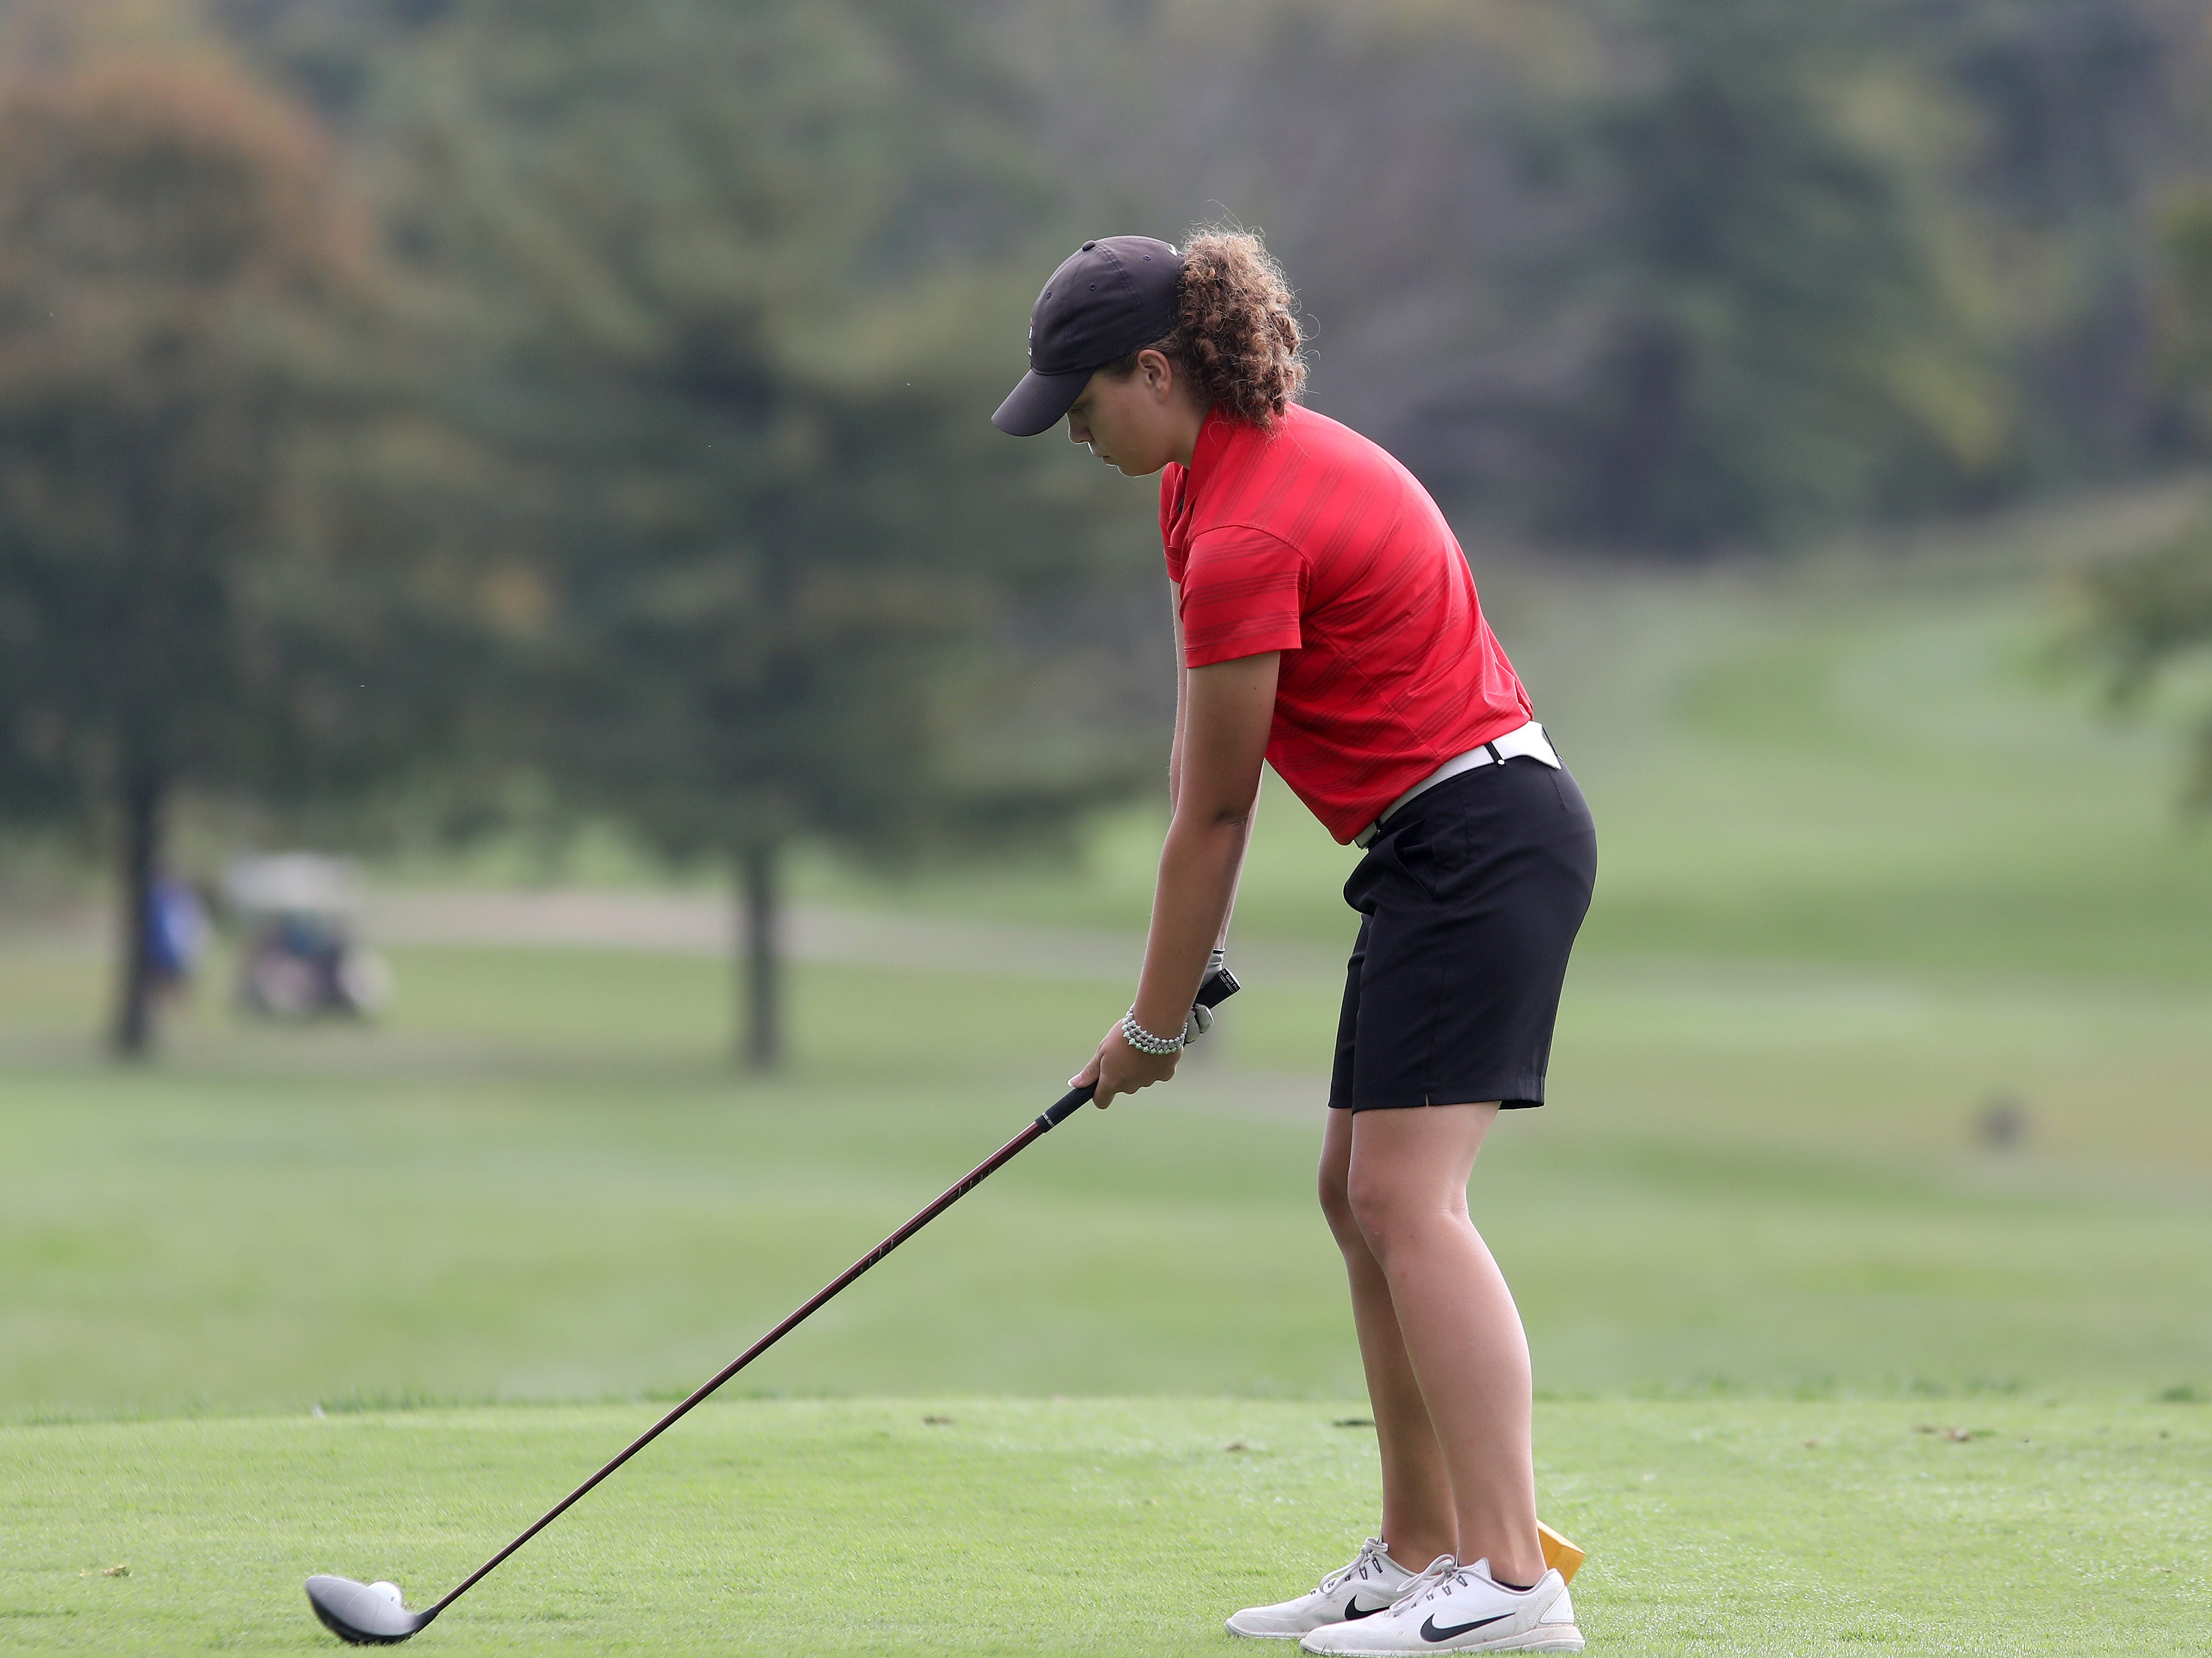 Colerain's Alex  Schutte tees off at the girls district golf tournament at GlenView Golf Course, Tuesday, Oct. 9, 2018.